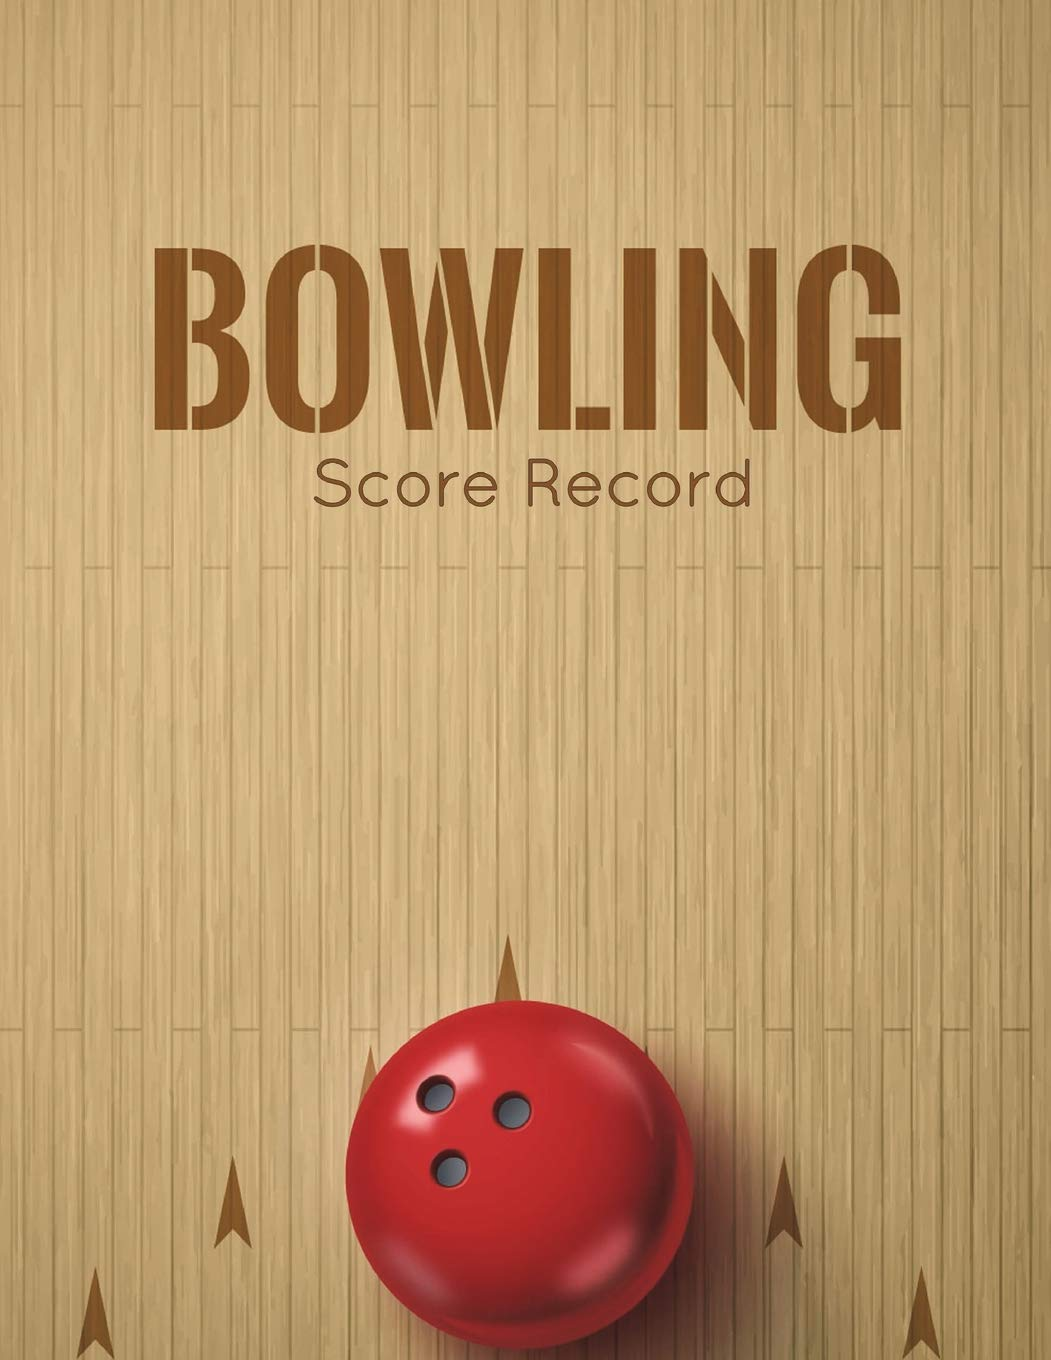 Bowling Score Record: Bowling Game Record Book, Bowler Score Keeper, Can be used in casual or tournament play, 16 players who bowl 10 frames, 100 Pages PDF